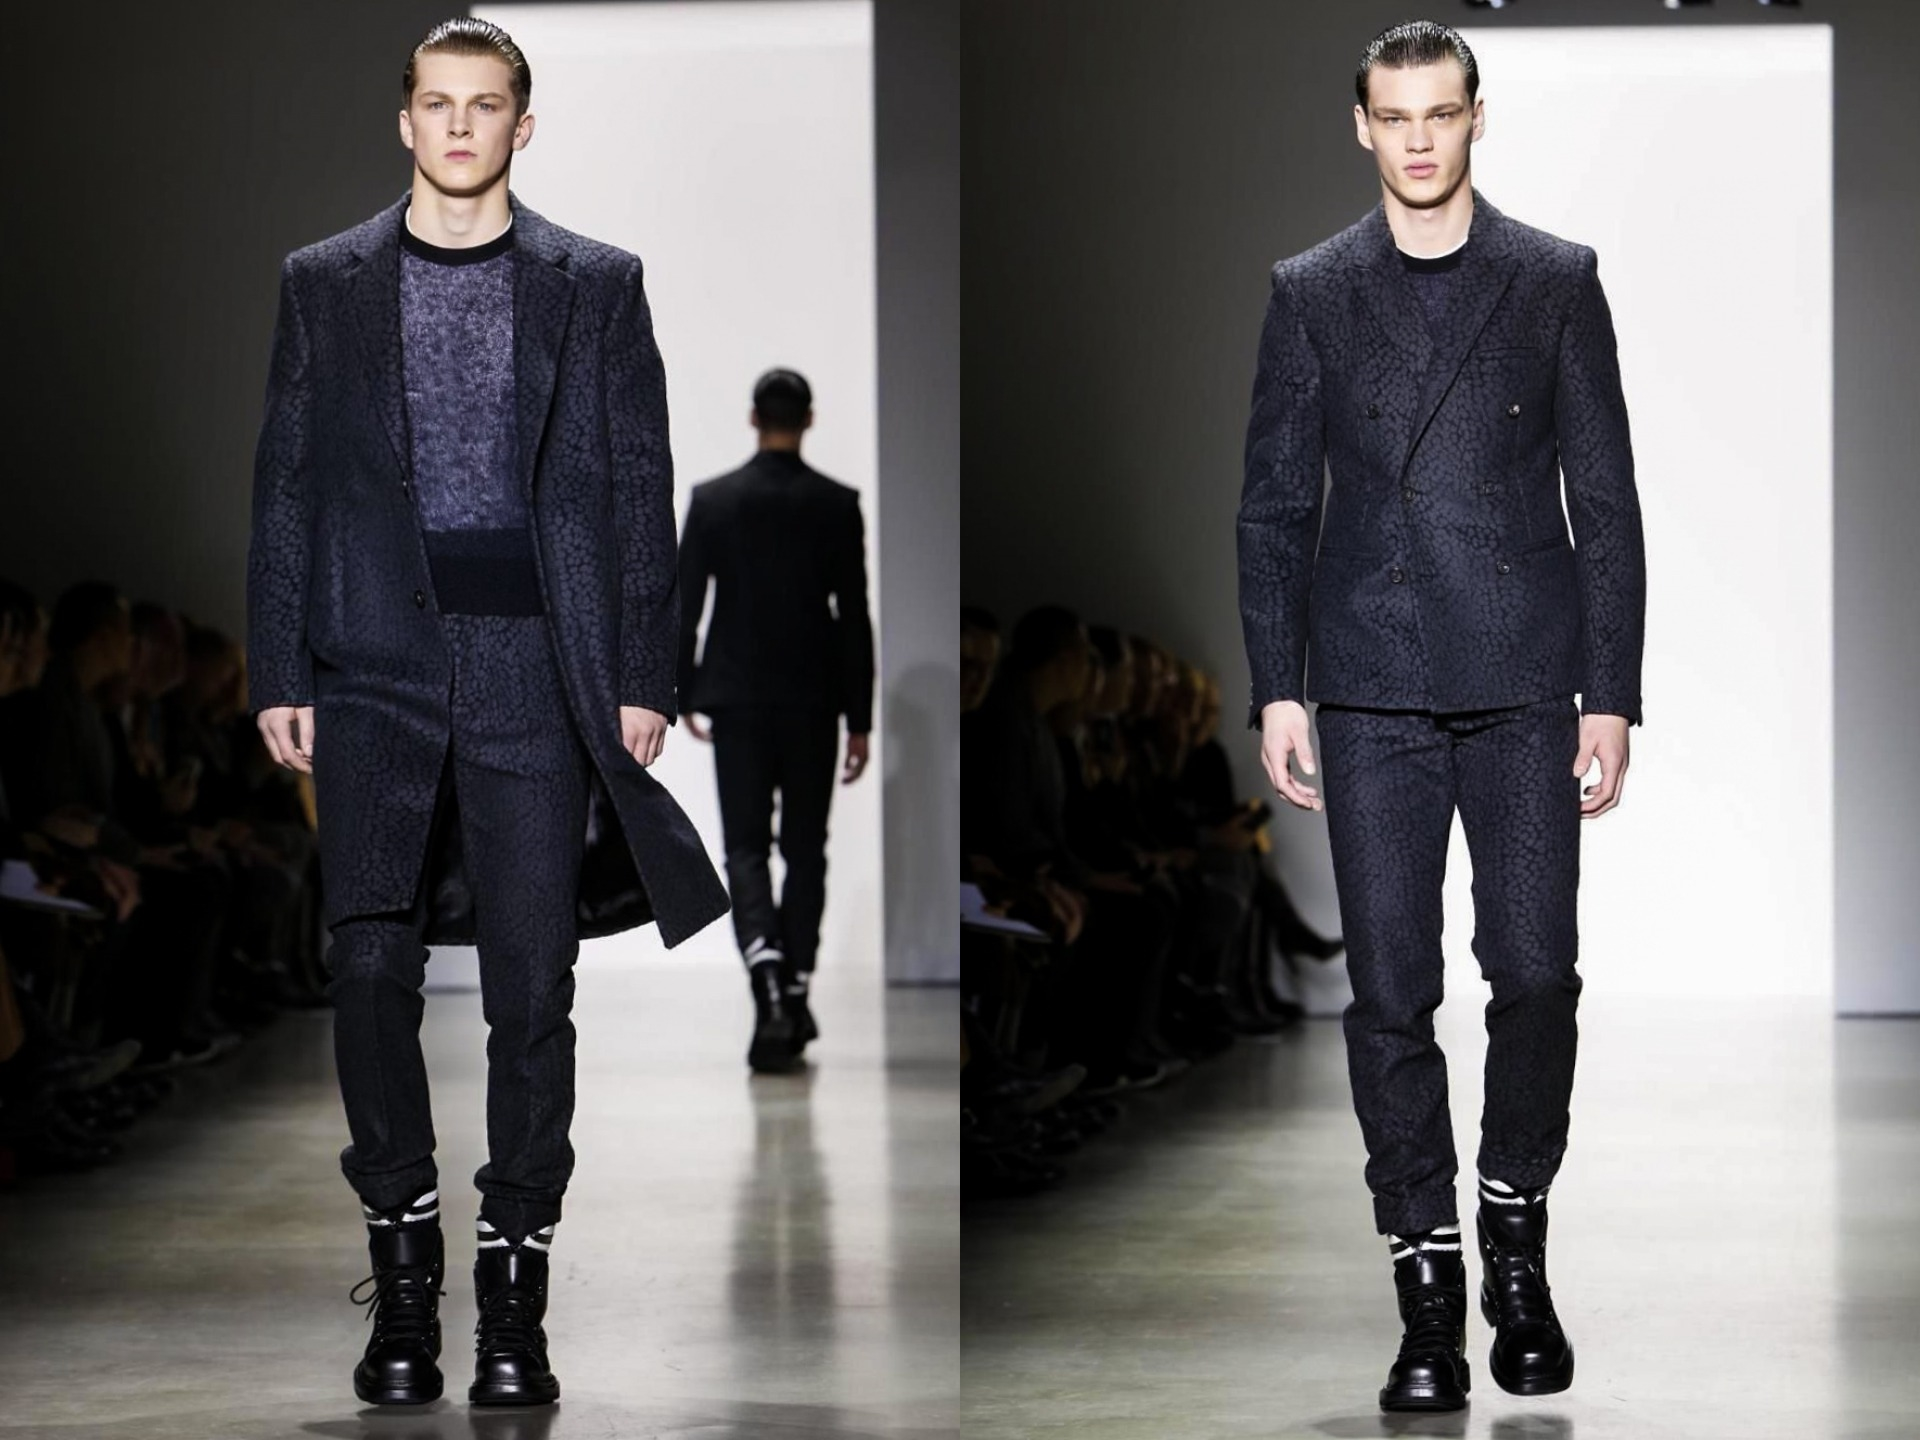 CALVIN KLEIN, fw15, fall winter 2015, milan fashion week, desfile 2015, moda masculina, tendencia masculina, menswear, fashion blogger, blogger, style, blogger, fashion blogger, moda sem censura, alex cursino, 8